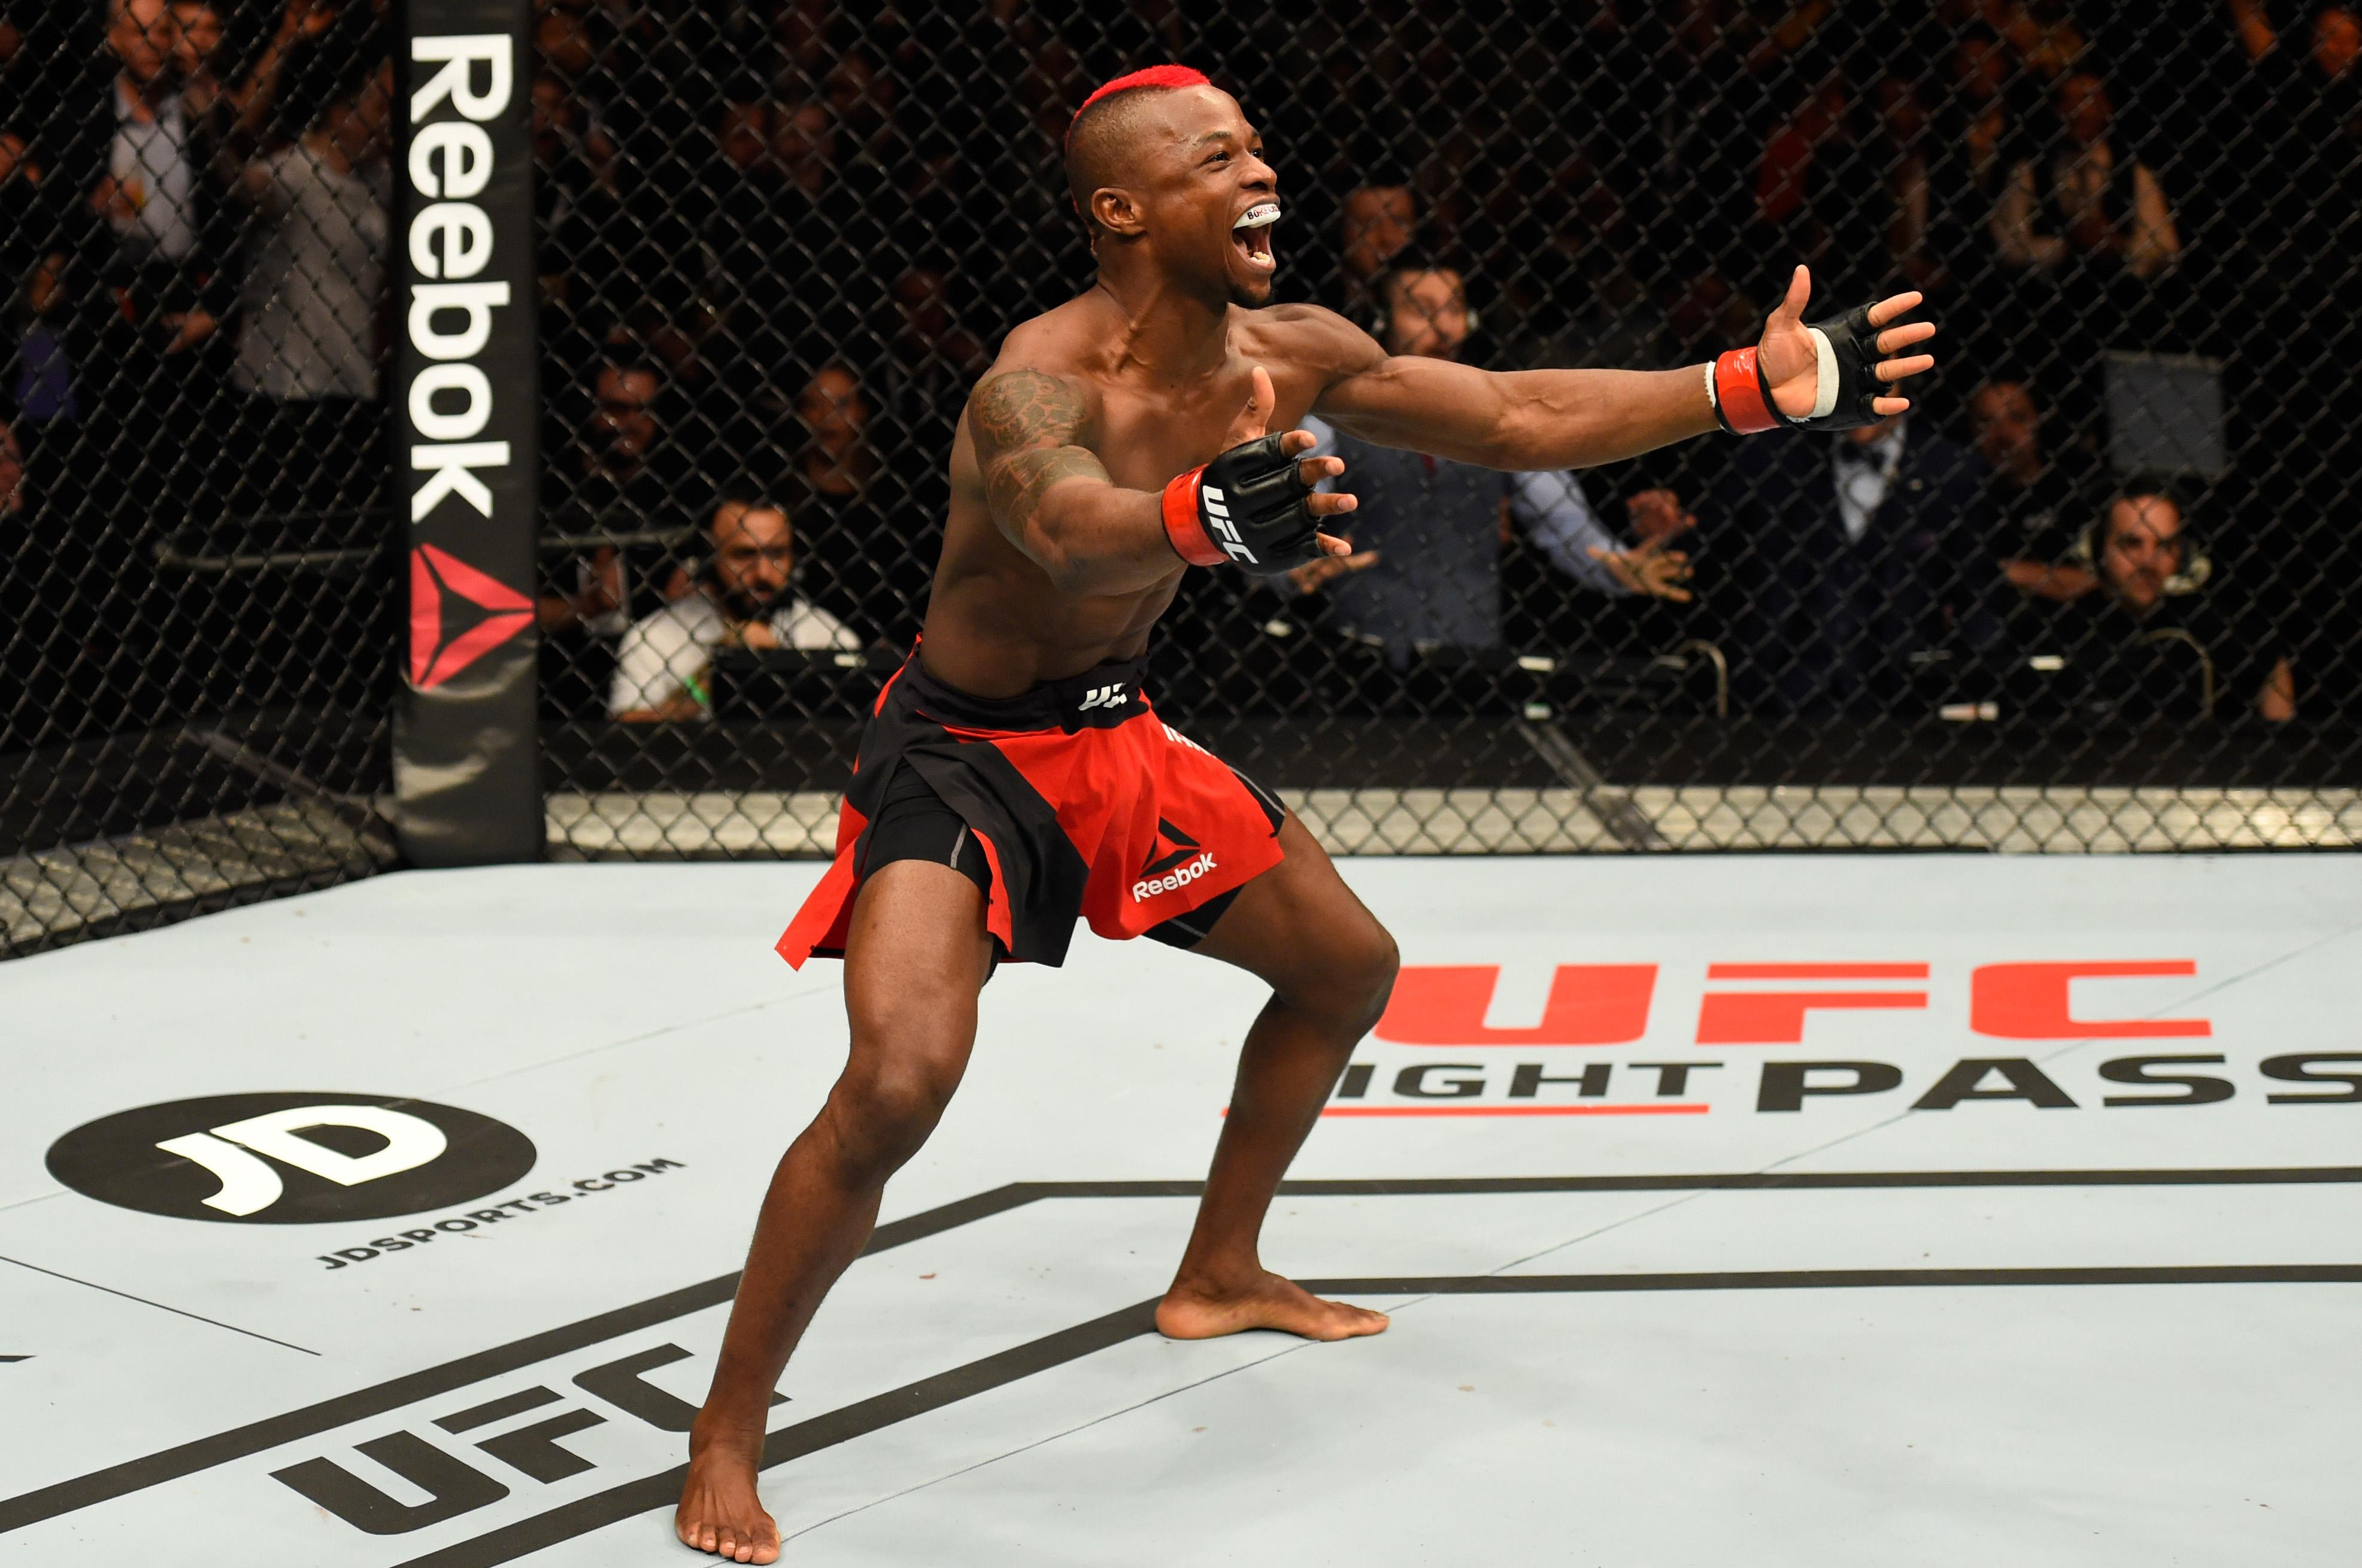 Lightweight Diakiese is welcoming the challenge of fighting away from home